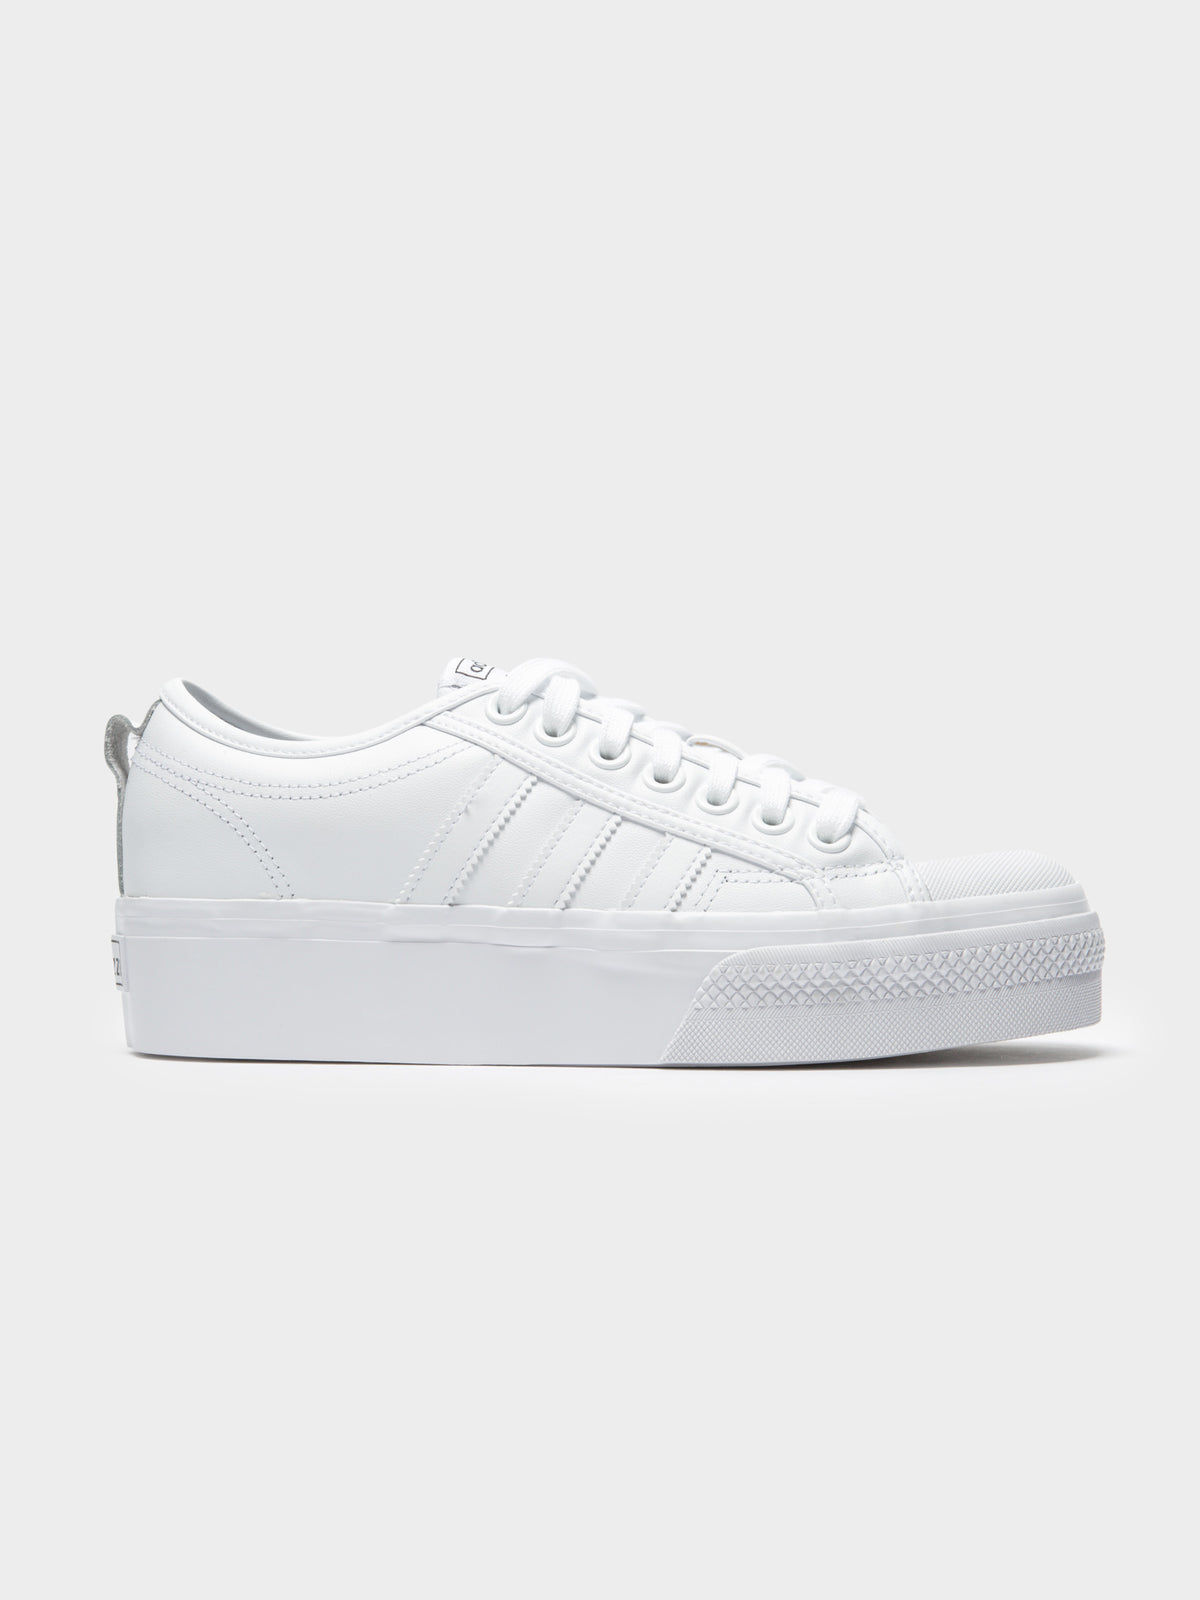 Womens Nizza Platform Sneakers in White